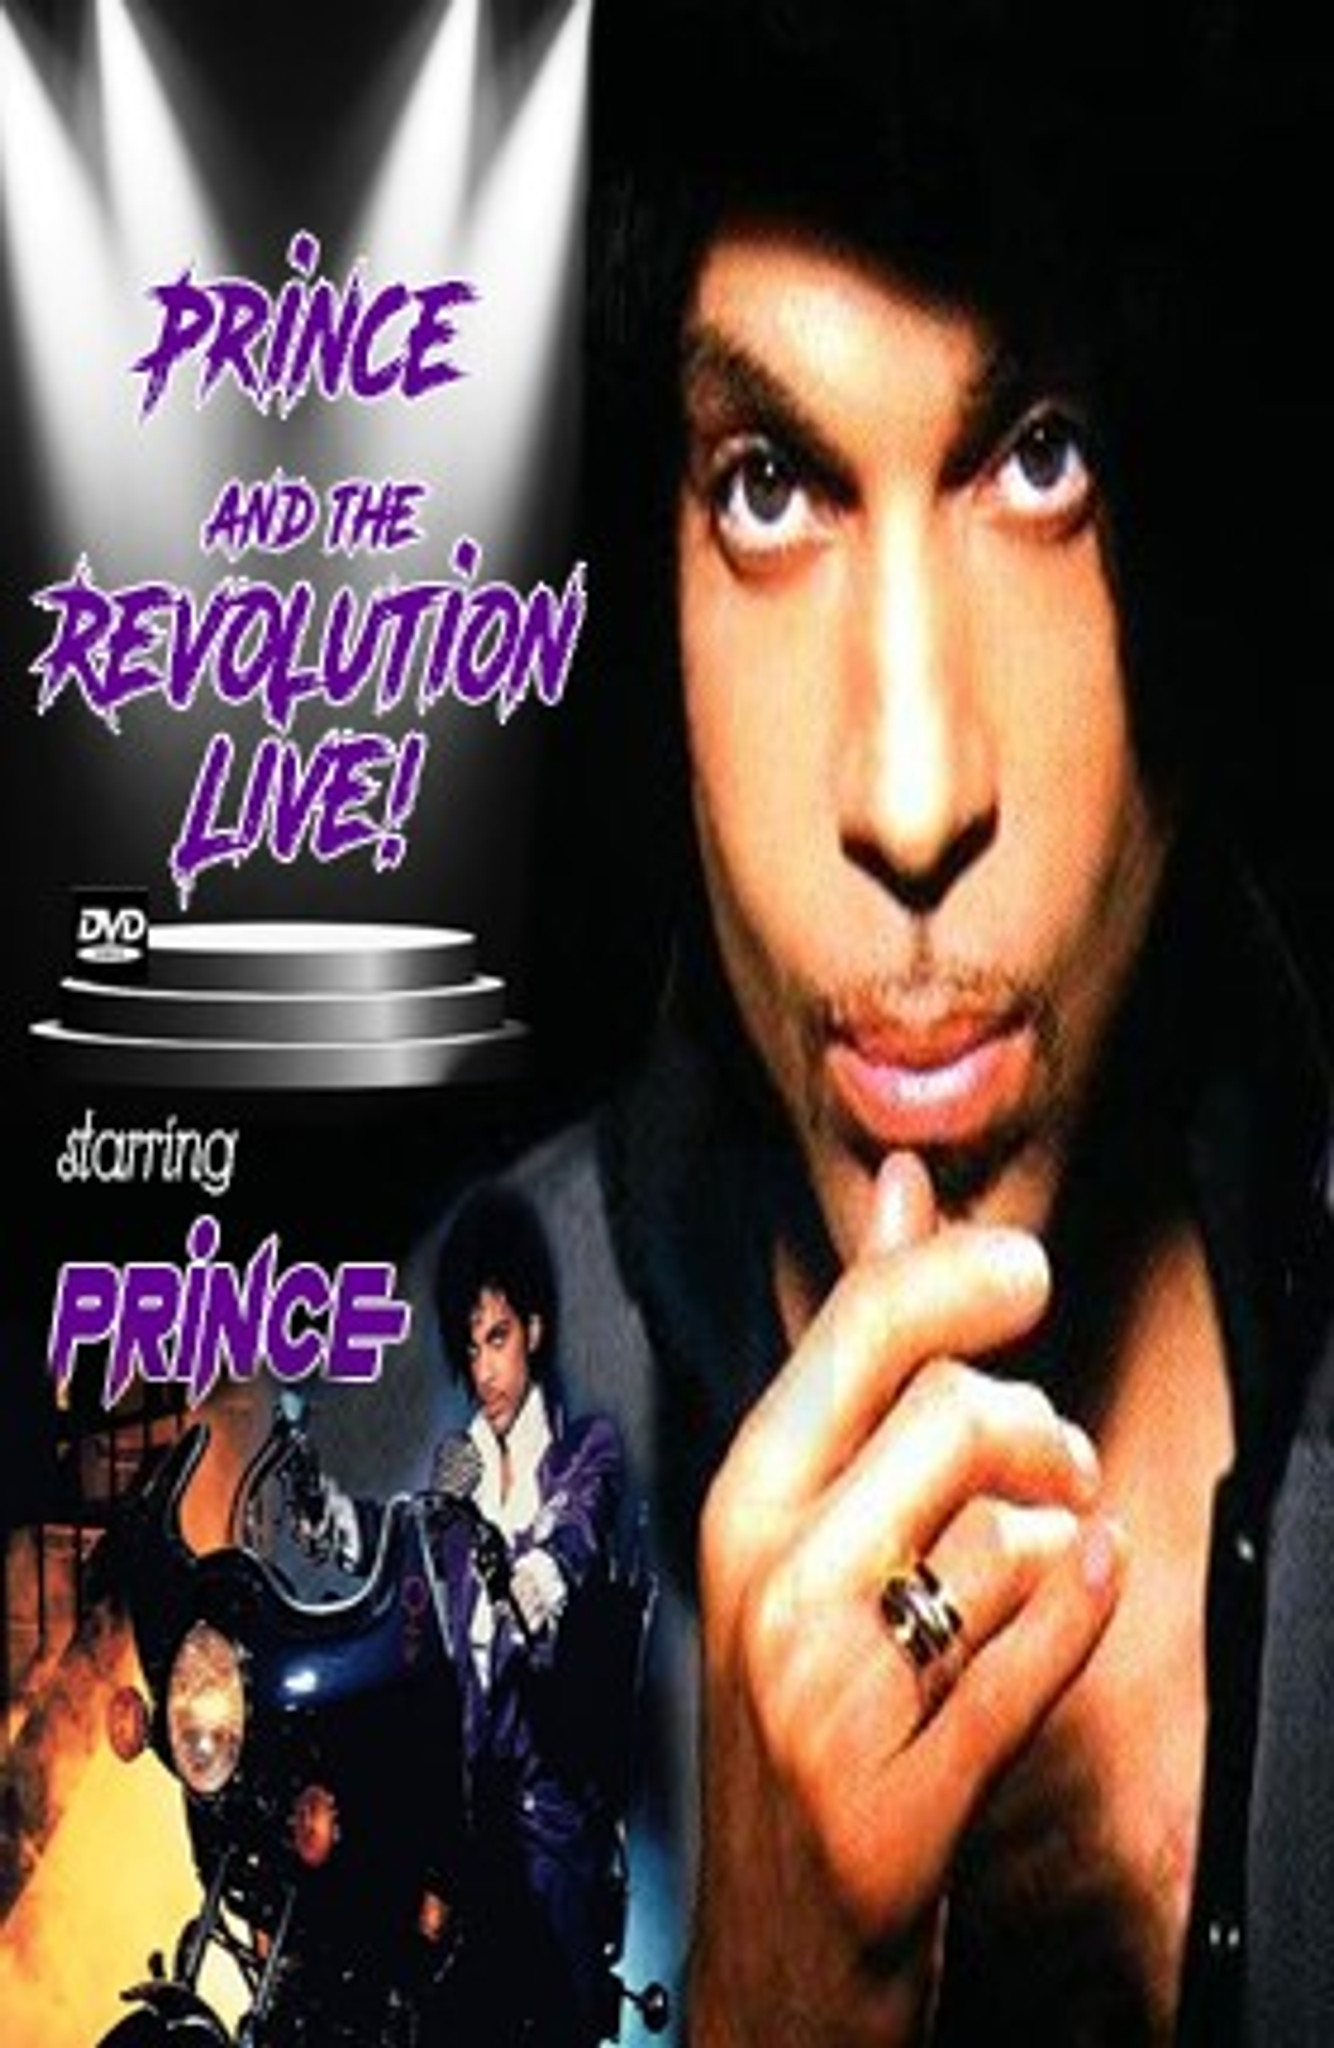 Prince and the Revolution: Live 1985 Concert